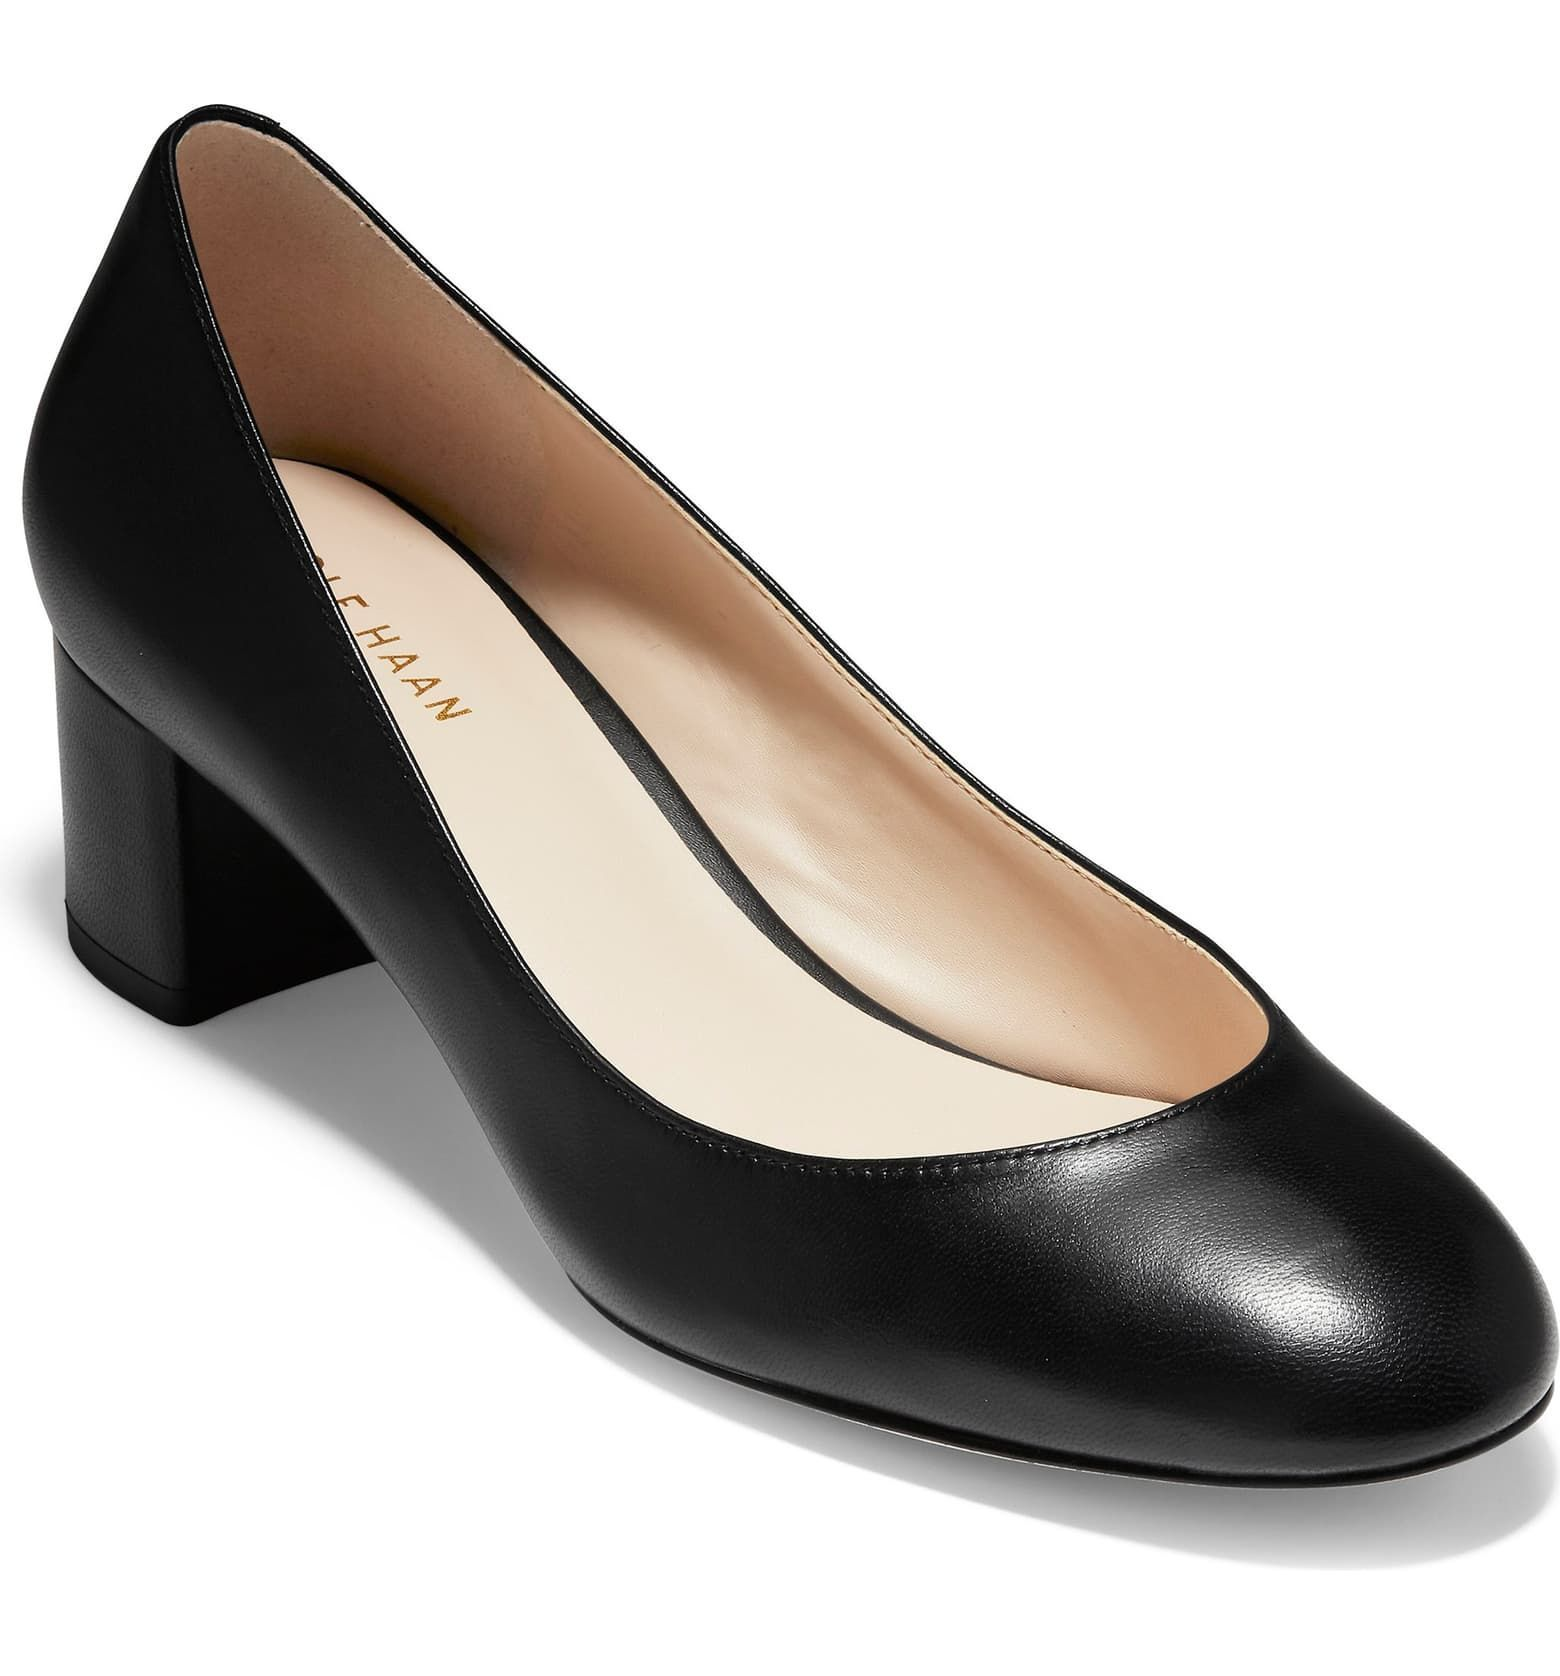 10 Best Shoes For Bunions Of 2020